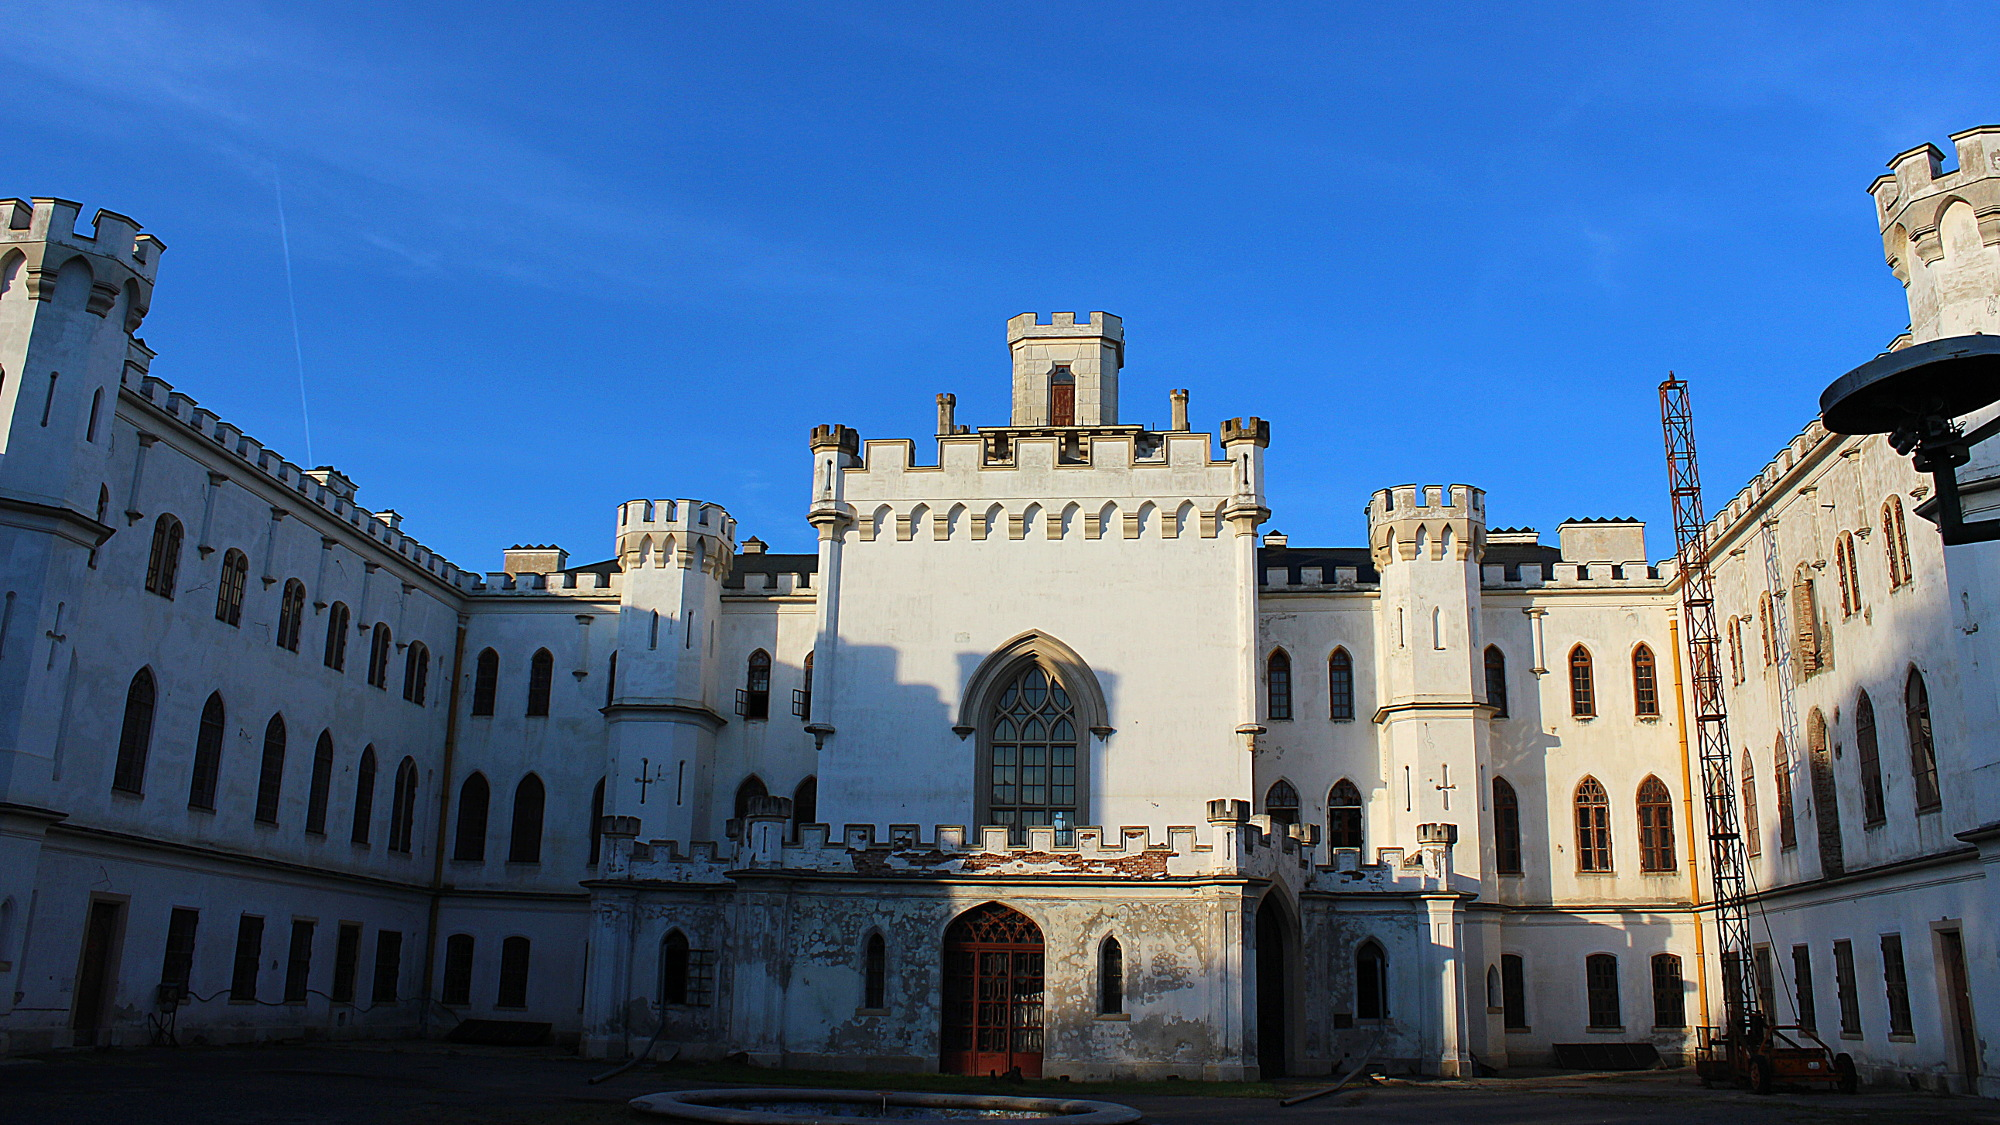 Abandoned Rusovce Mansion during sunset with blue sky.